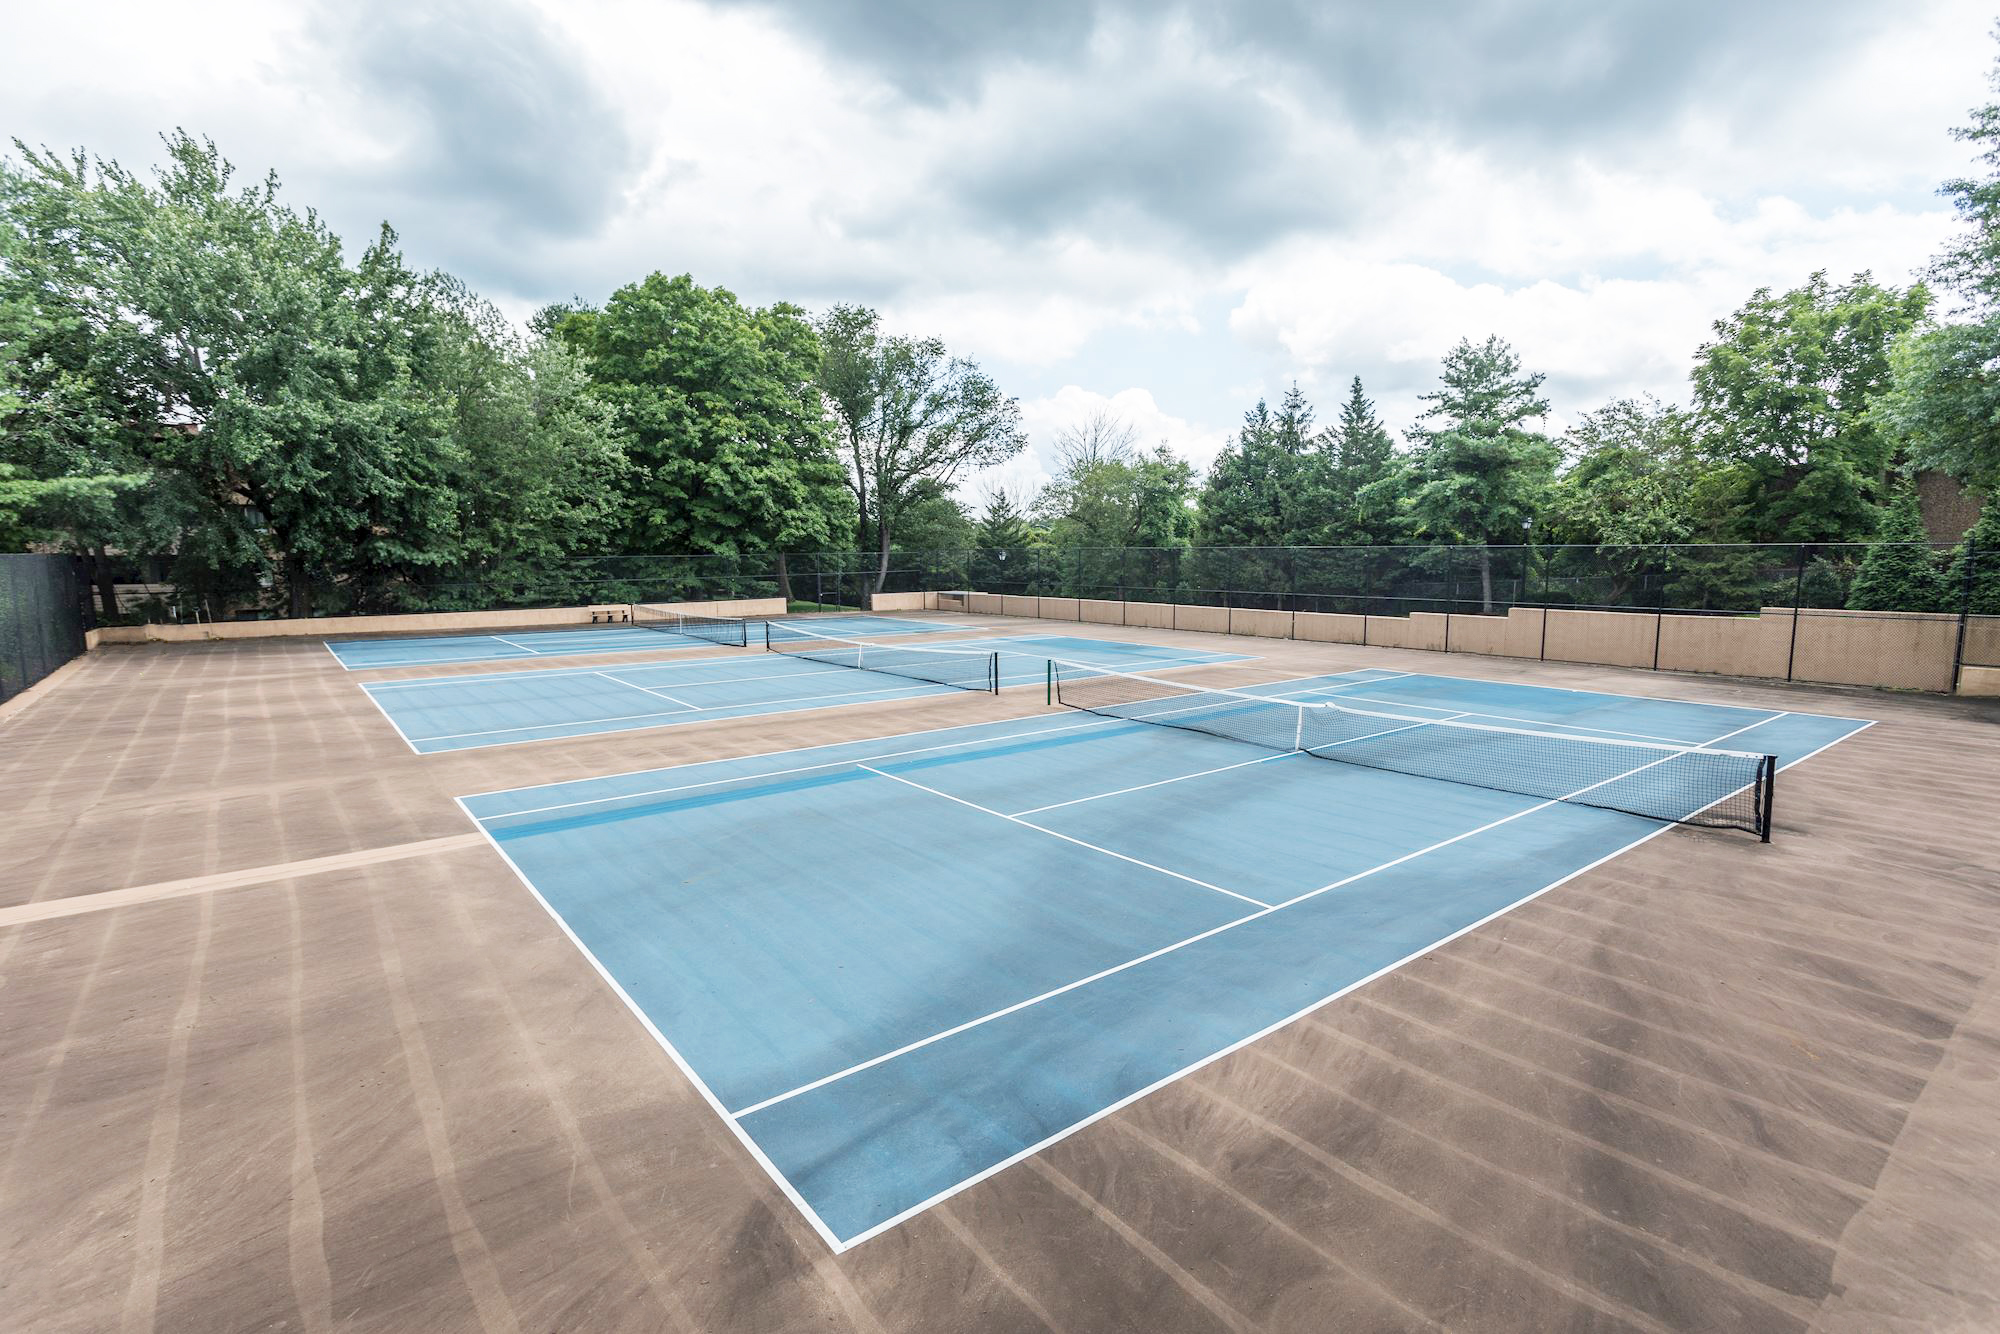 Annen Woods Apartments in Pikesville, MD - Lighted Tennis Courts